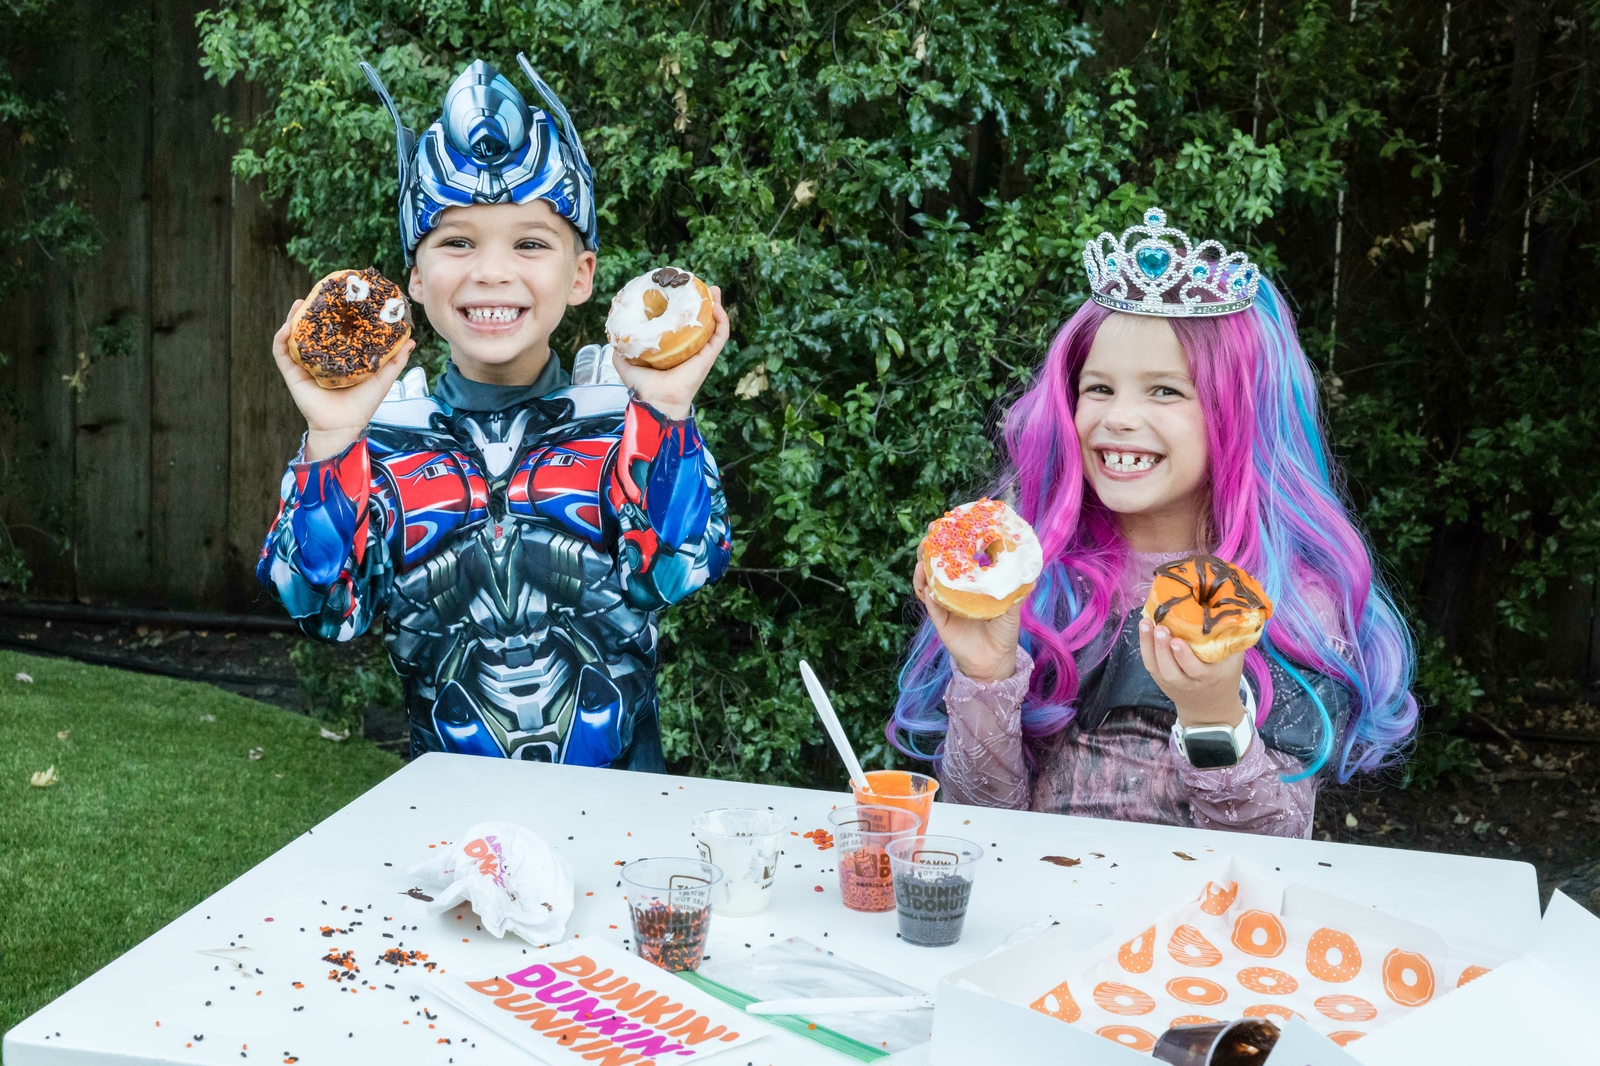 Four Design Ideas for Your Halloween DIY Dunkin' Donut Decorating Kits